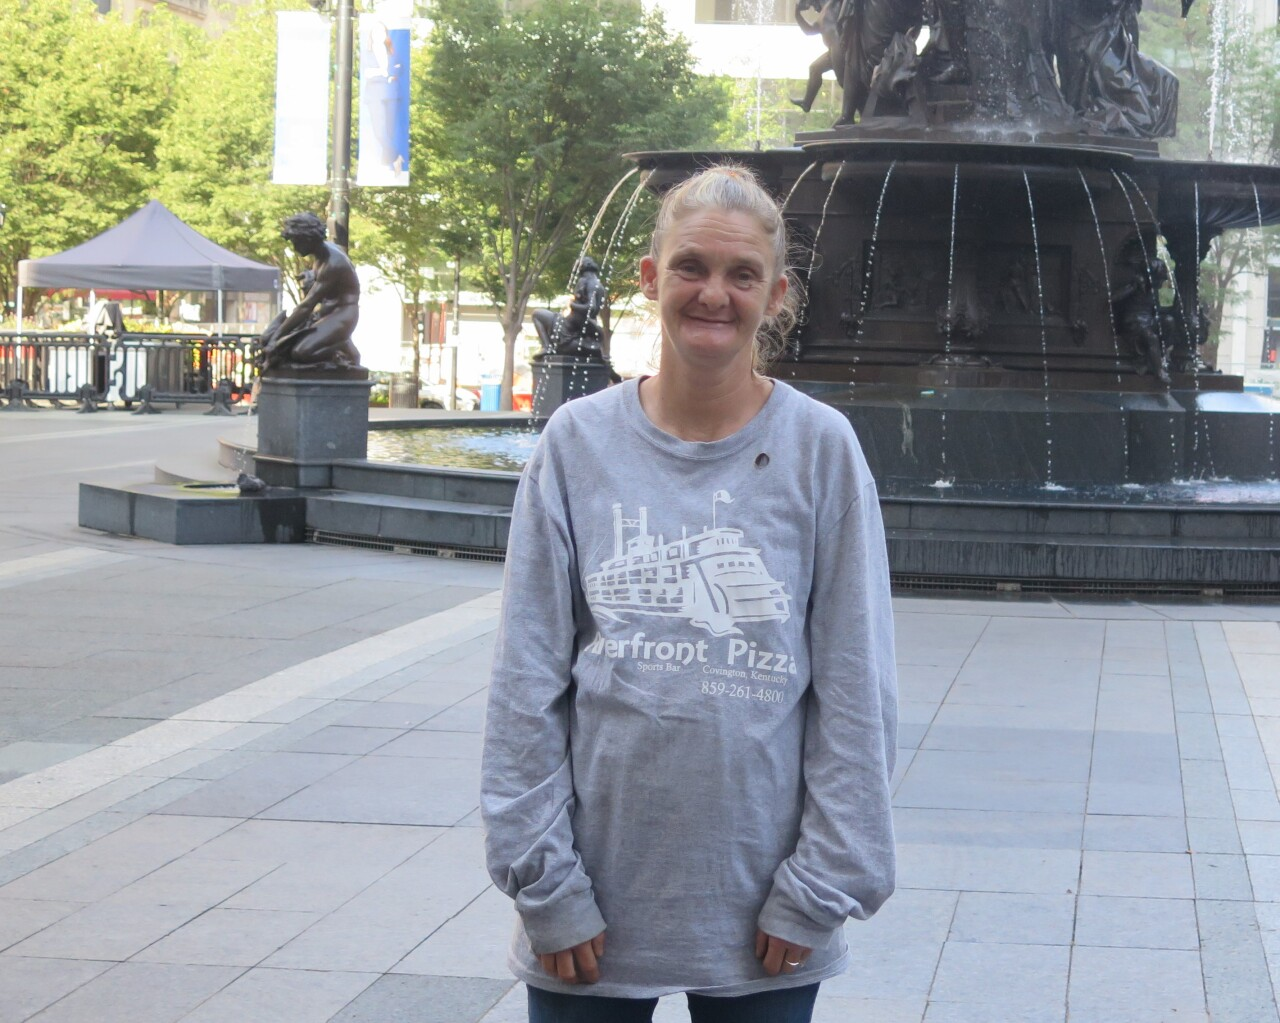 Mary Caldwell poses for a photo at Fountain Square on Aug. 5, 2021. She's wearing a long-sleeved gray t-shirt and has her long hair pulled back in a ponytail.